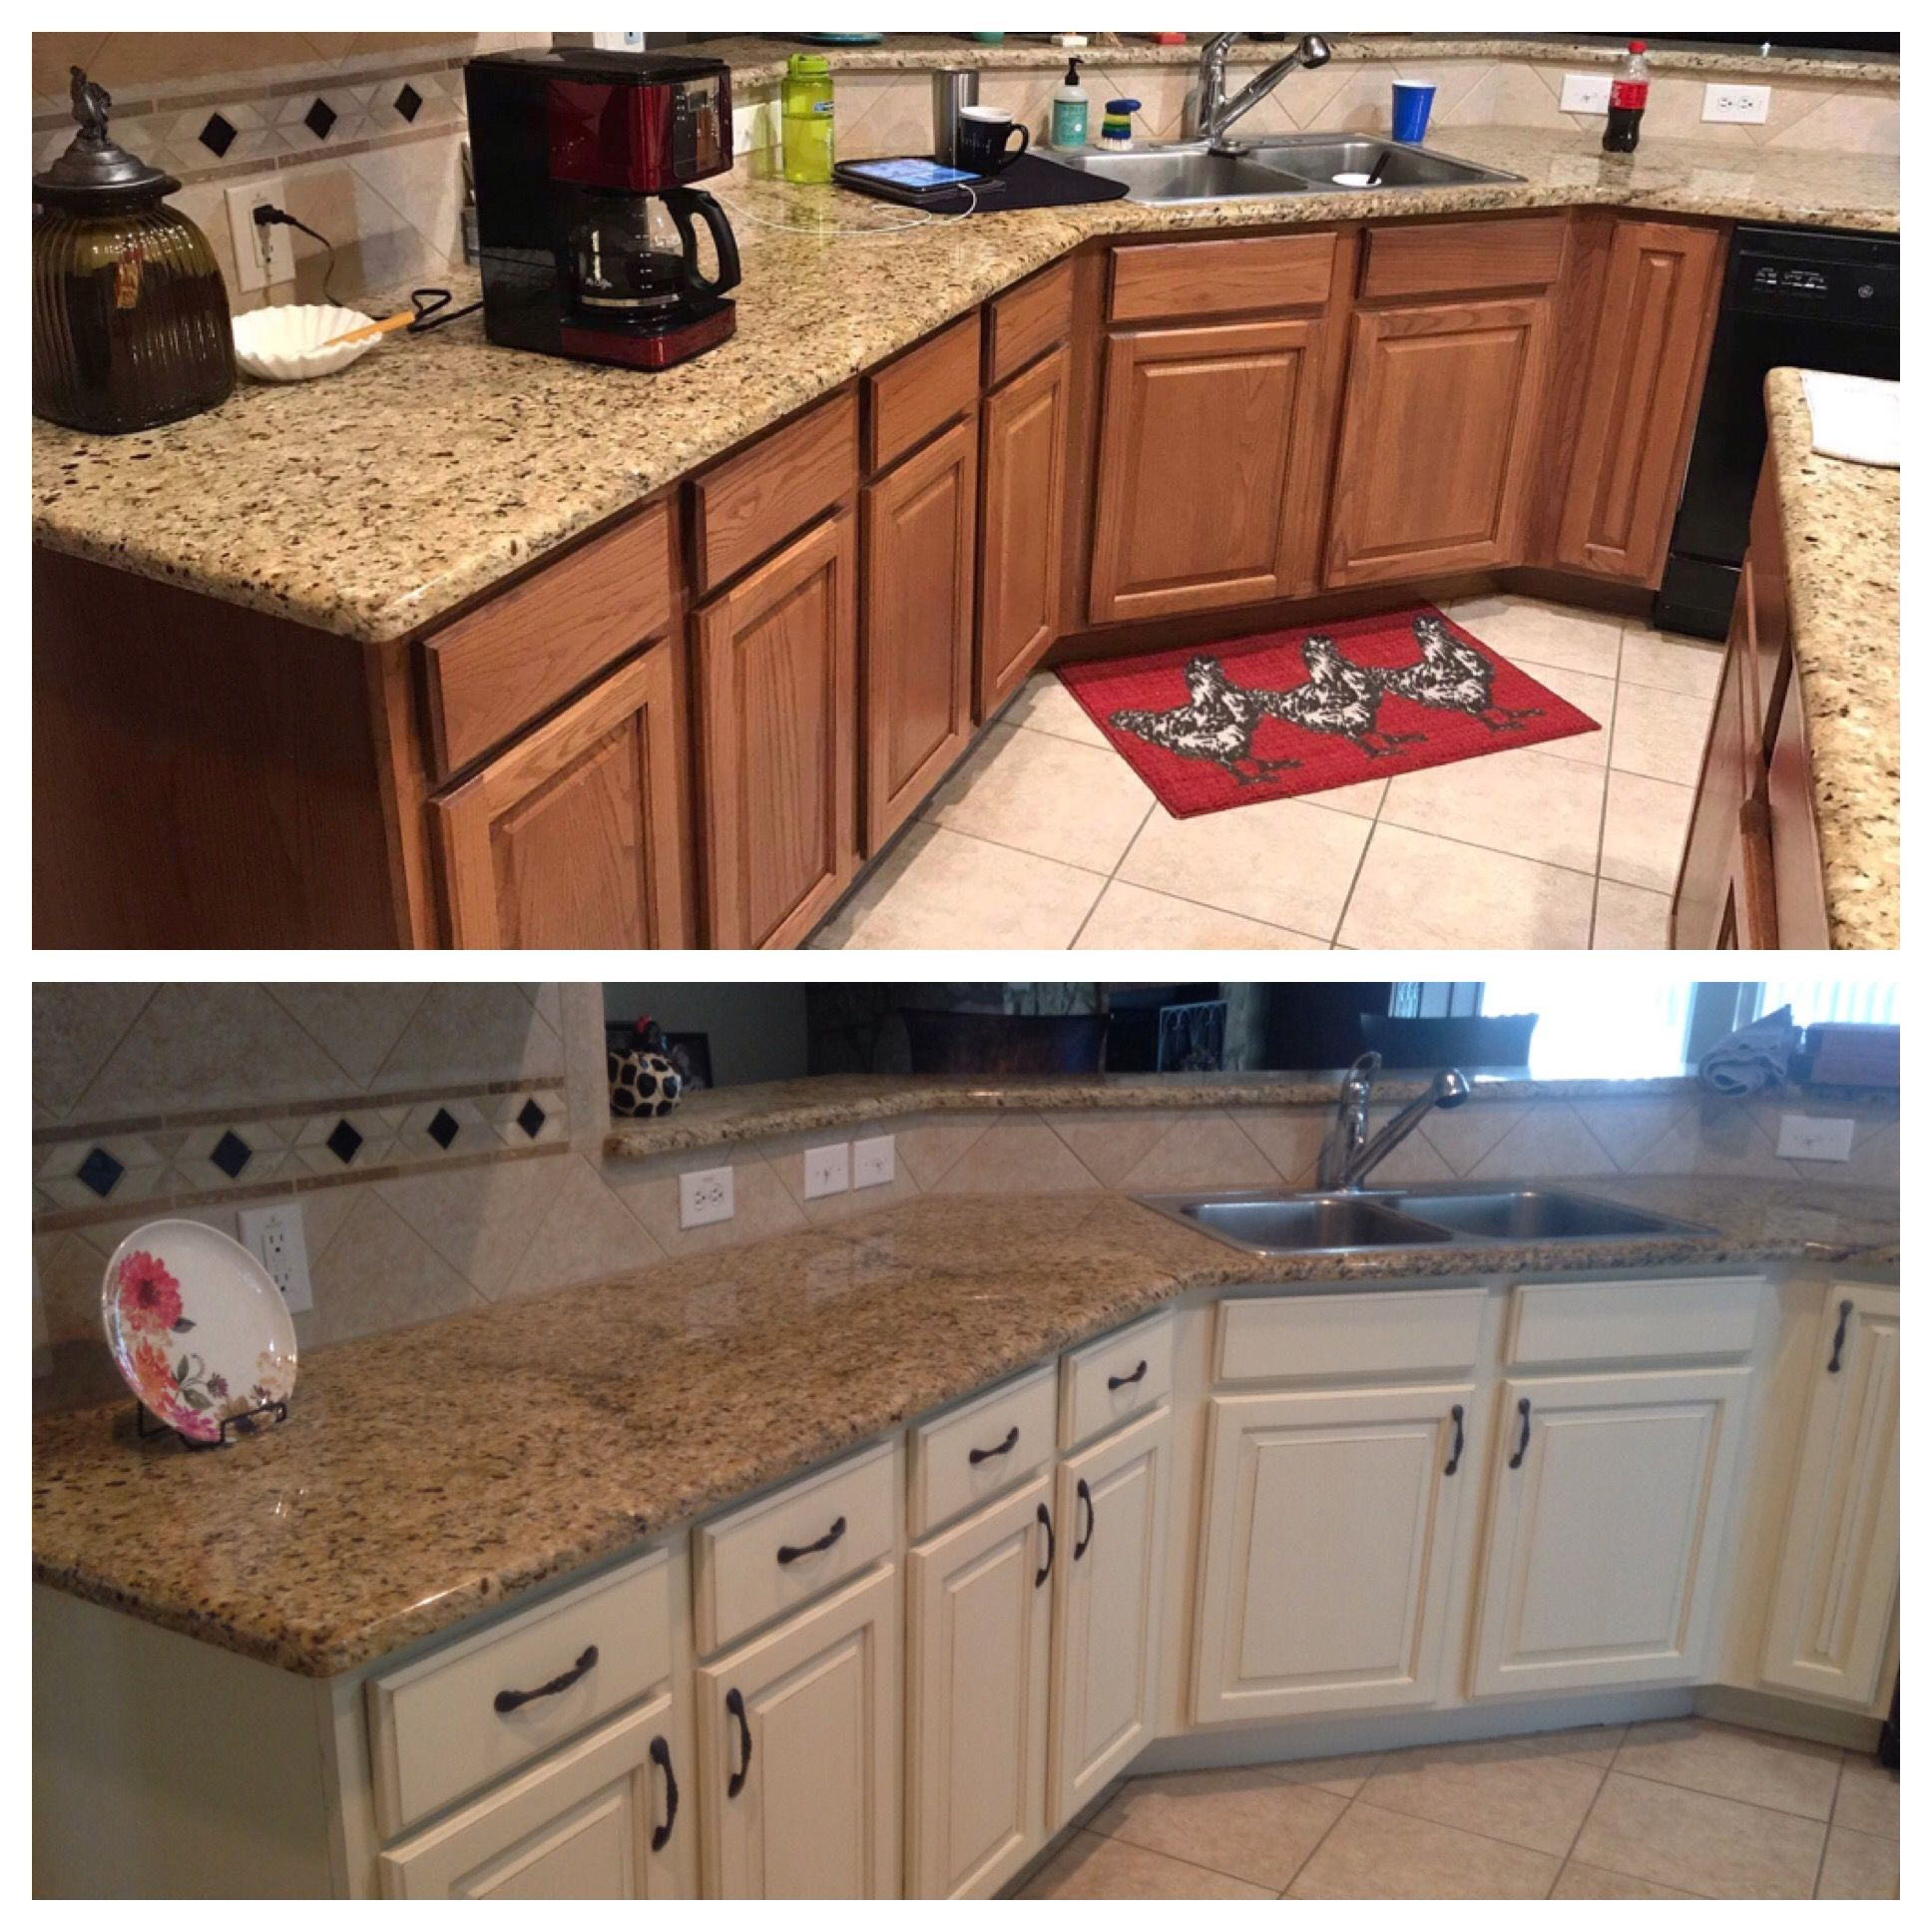 Kitchen Refresh Had The Cabinets Painted And Antiqued With Off White Chalk Paint Redo Kitchen Cabinets Kitchen Cabinets Oak Kitchen Cabinets